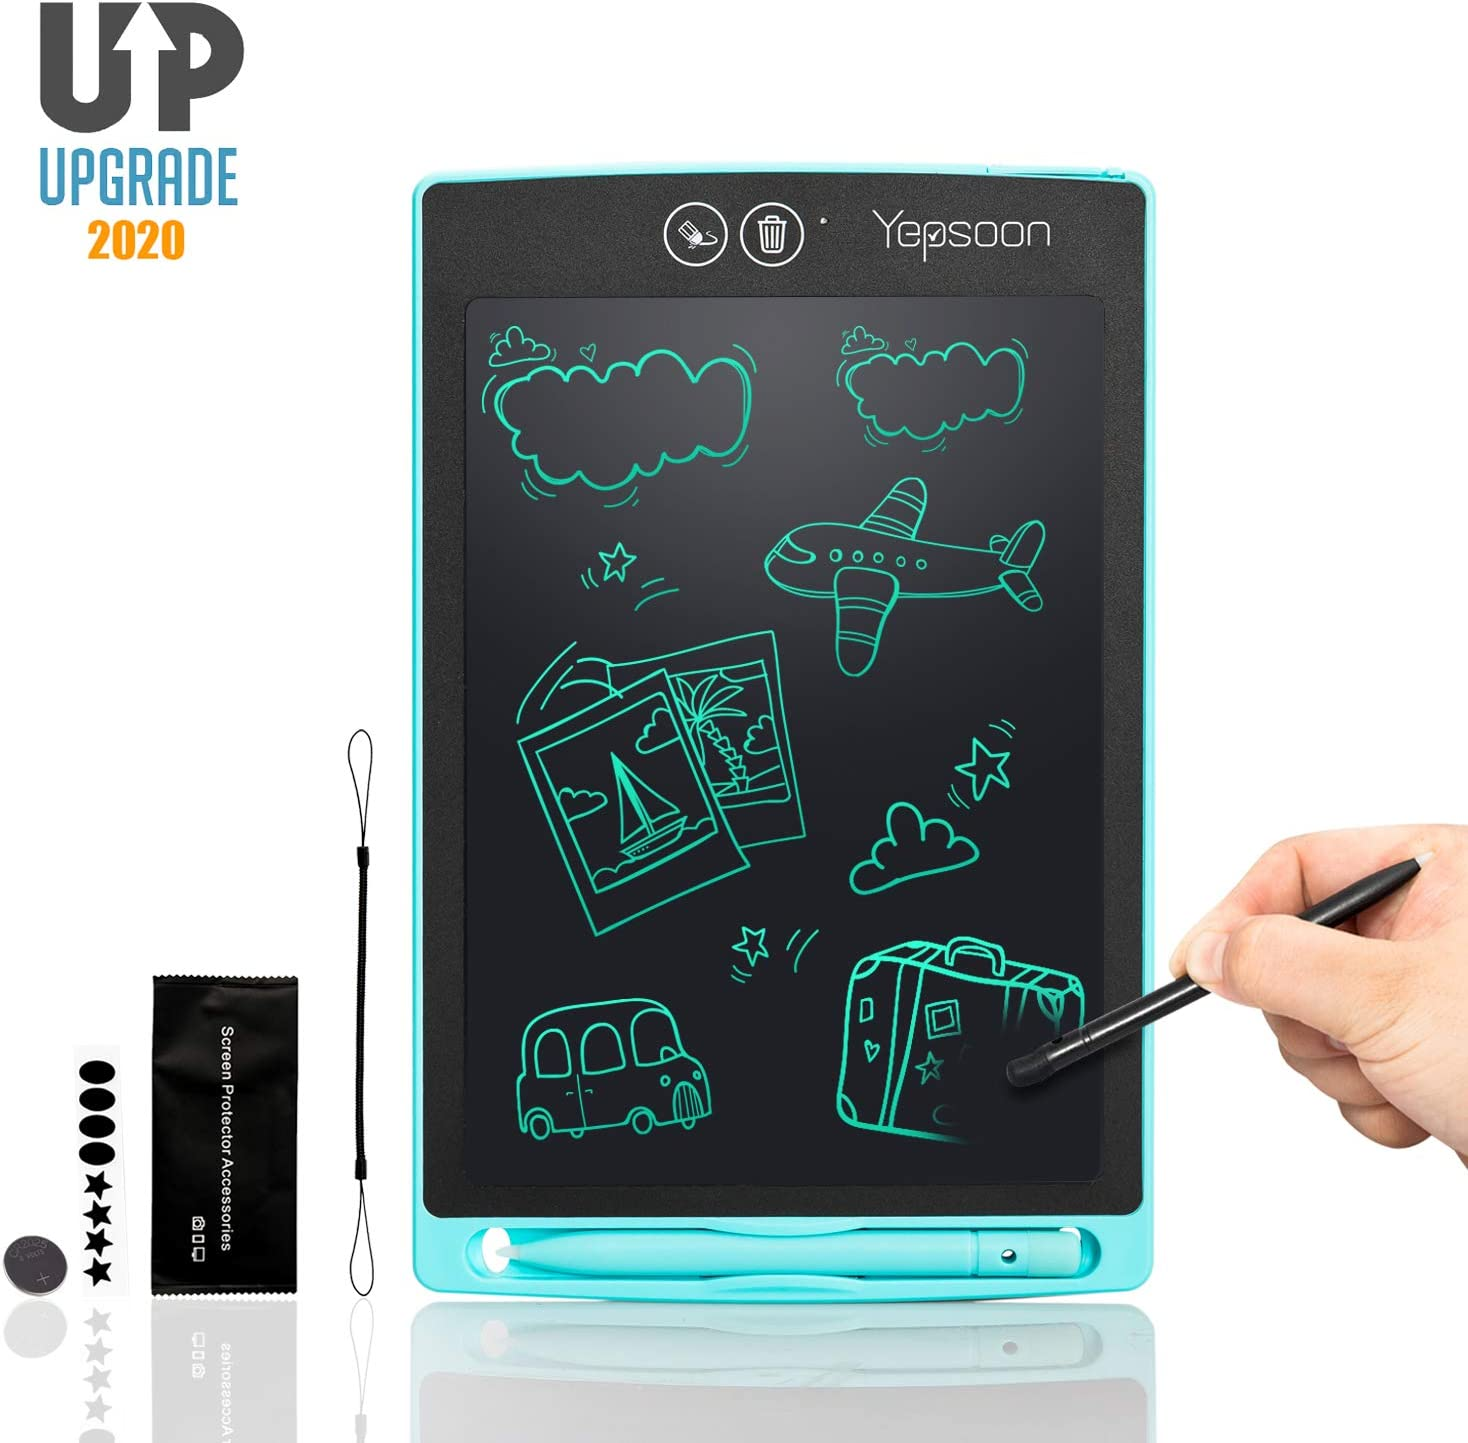 ZSHXF 8.5 Inch Colorful LCD Writing Tablet for Kids Portable Electronic Writing Board Drawing Board with Lock Switch Doodle Board for Kids Home School